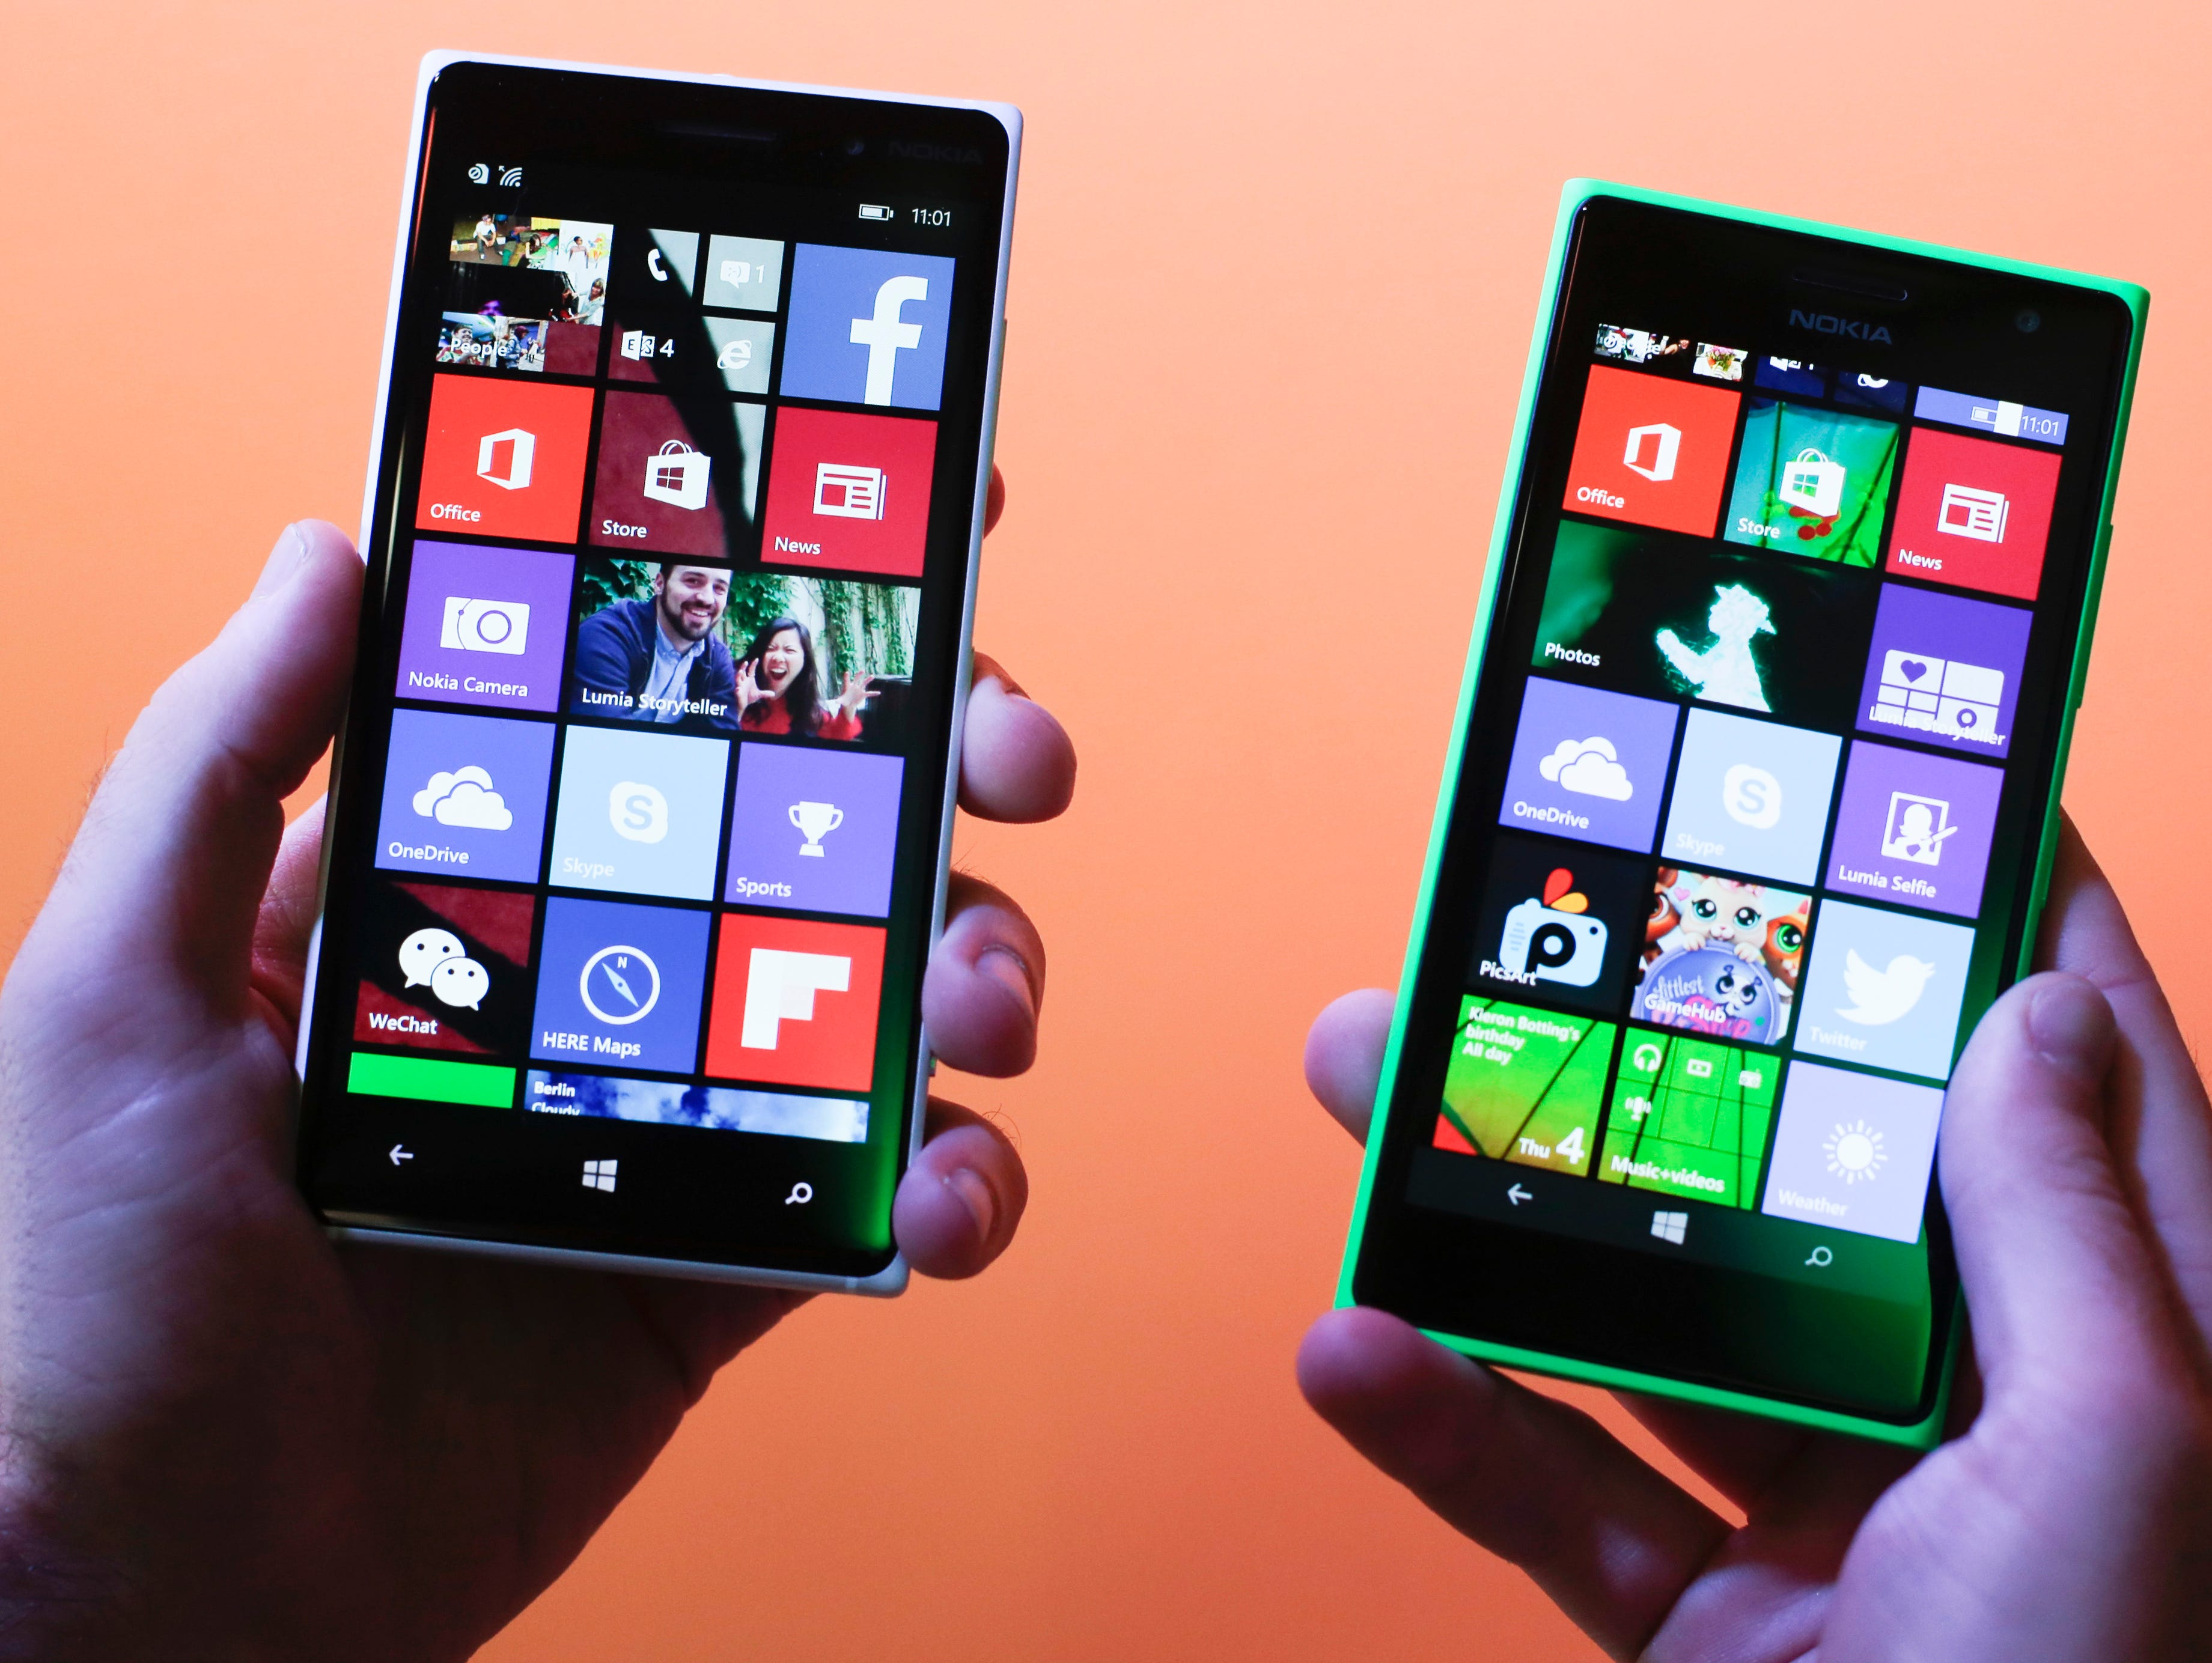 A man shows the Lumia 830, left, and 730, right, smartphones during a Microsoft event at the consumer electronic fair IFA in Berlin.